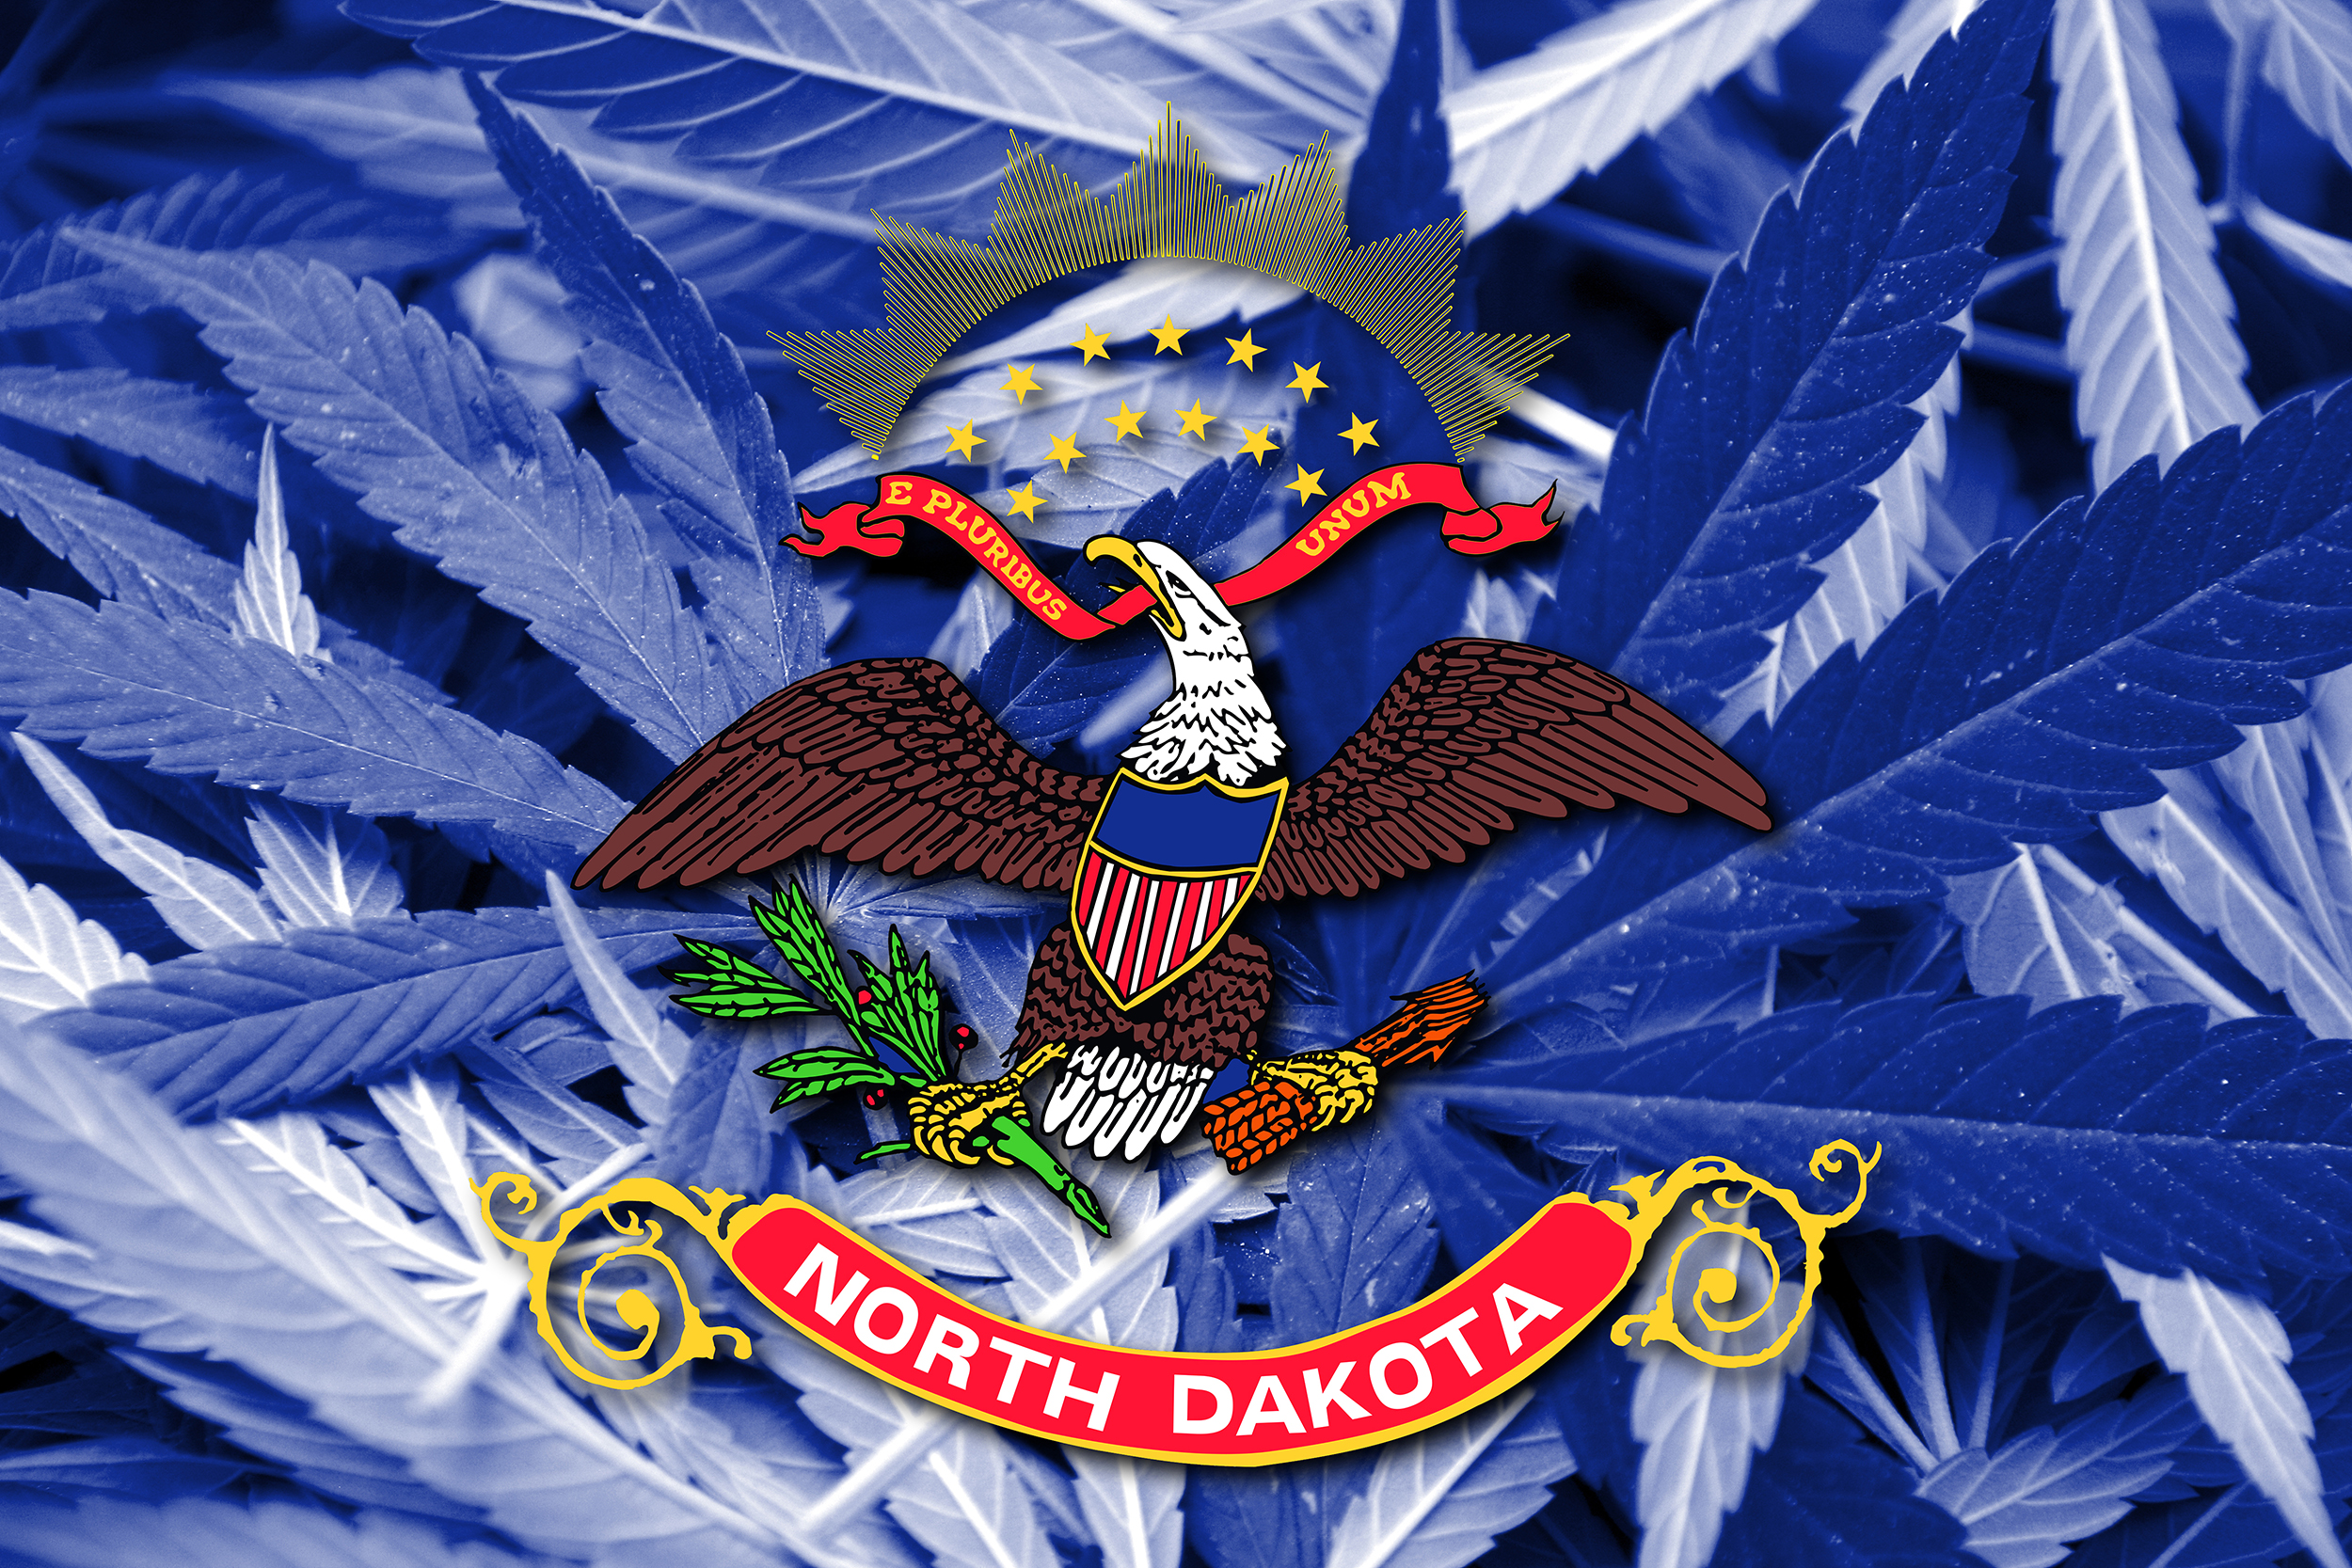 North Dakota To Accept Dispensary License Applications